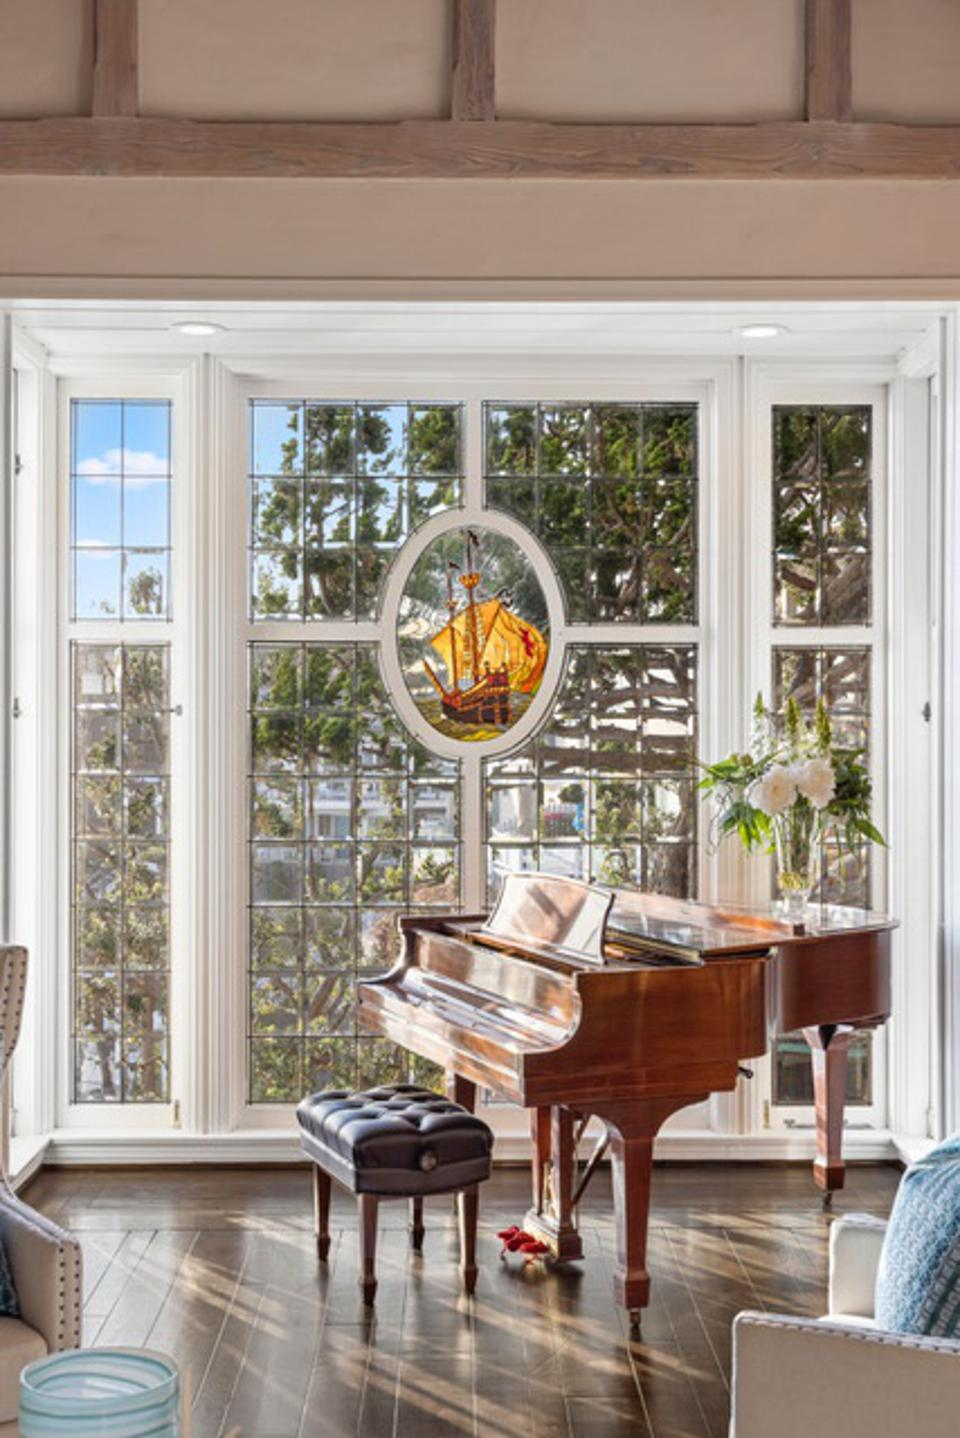 Piano and stained glass window.